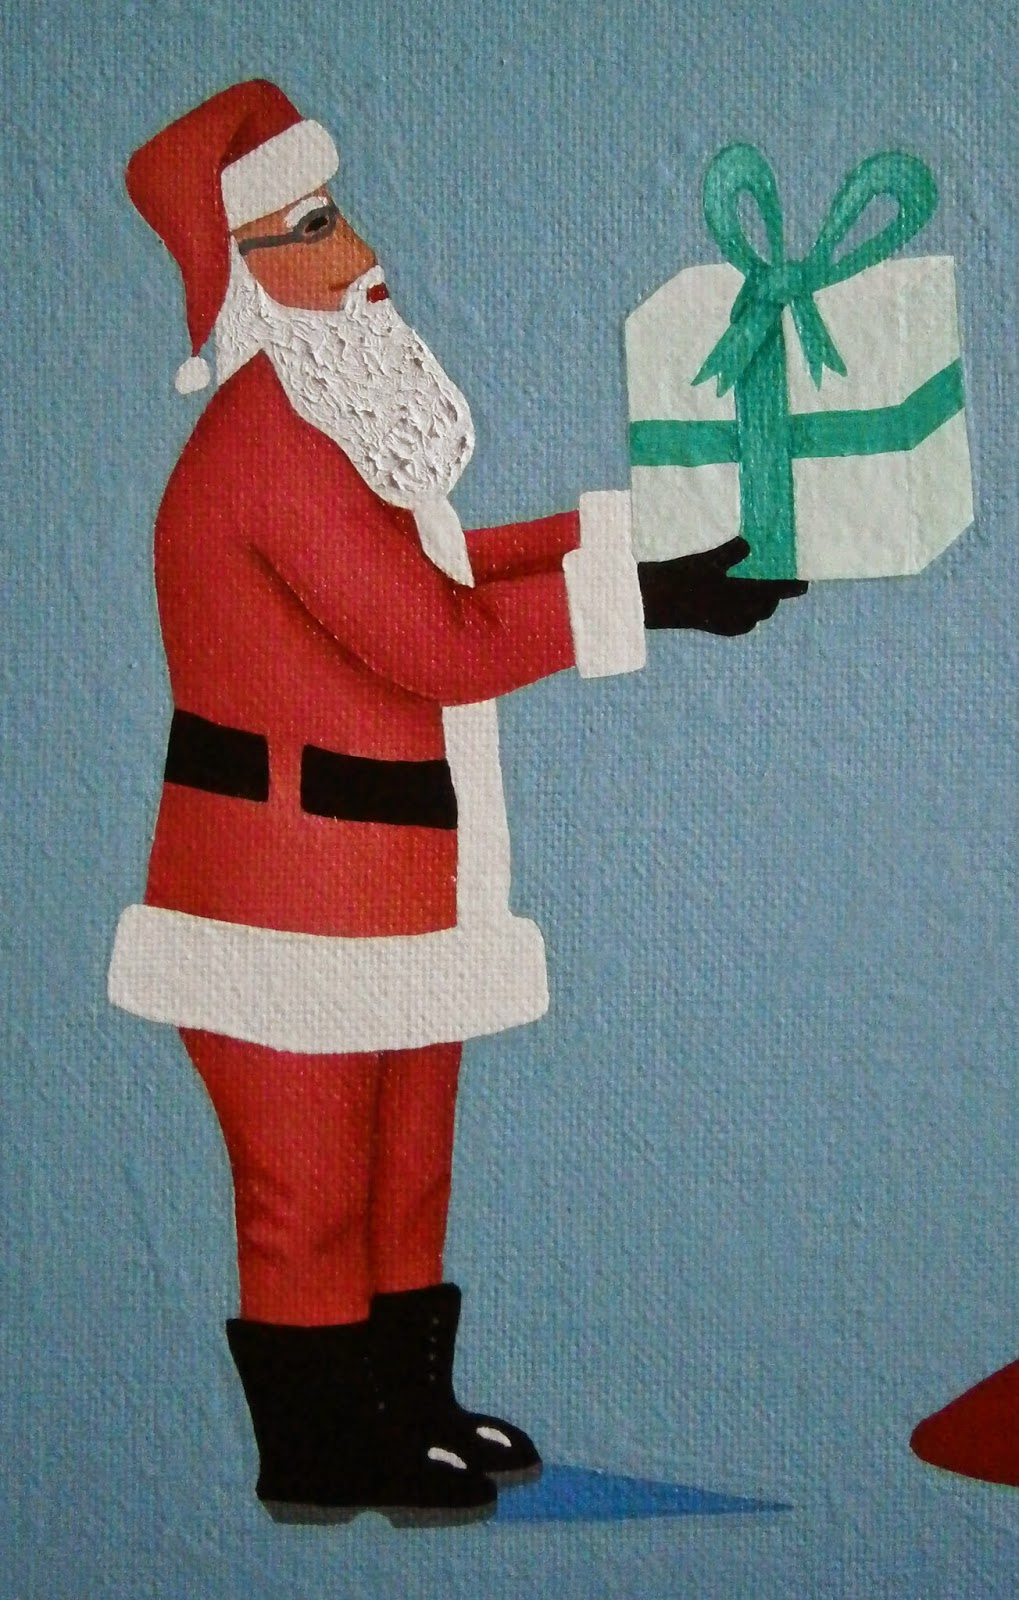 Santa Claus, Saint Nicholas, Father Christmas, Kris Kringle, Santa painted by L. E. Gav Thorpe